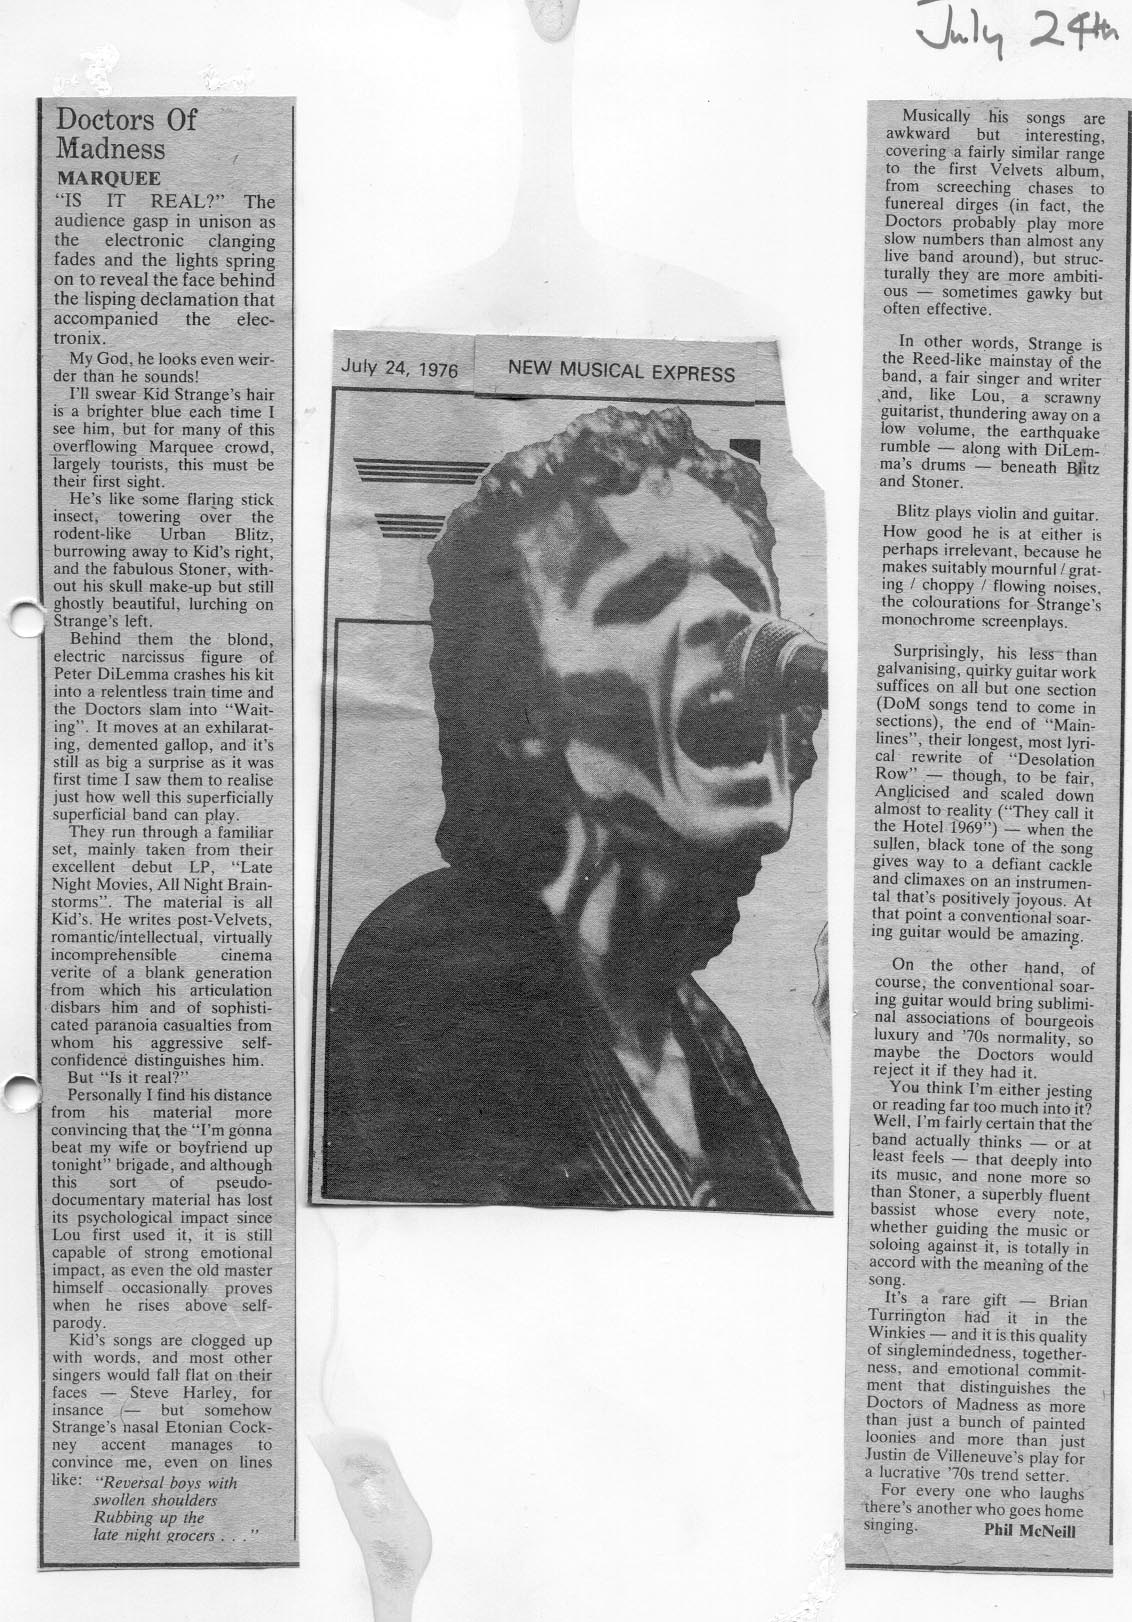 Doctors-NME Marquee review 1976